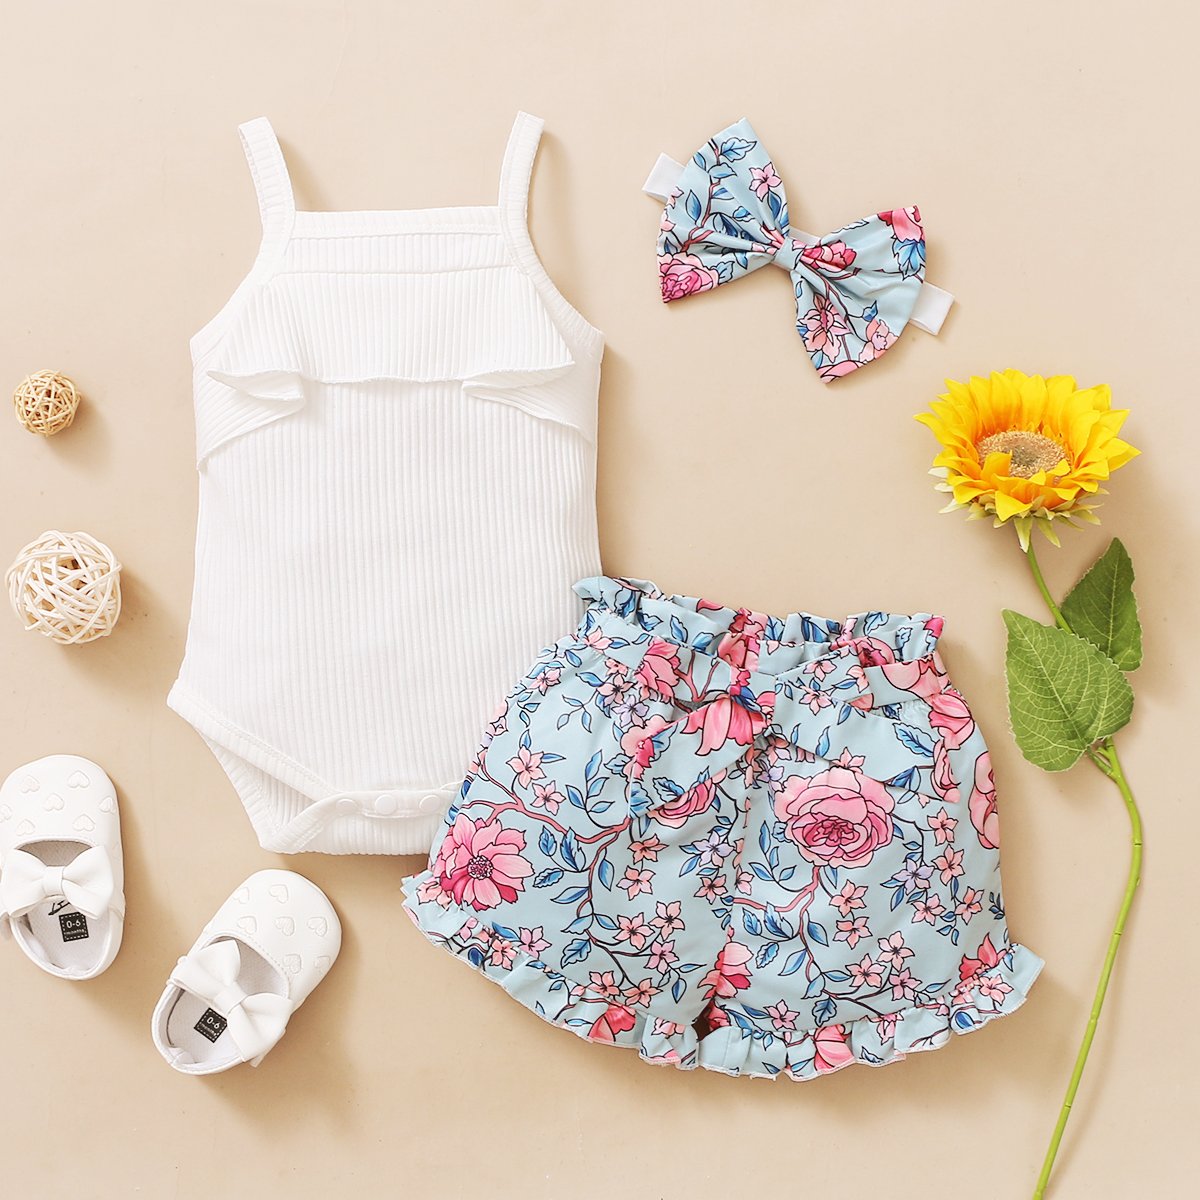 3Pcs Newborn Baby Girls Summer Clothes Cute Beach Boho Strap Ruffle Romper Floral Shorts Toddler Outfit Baby Girls Clothing 5